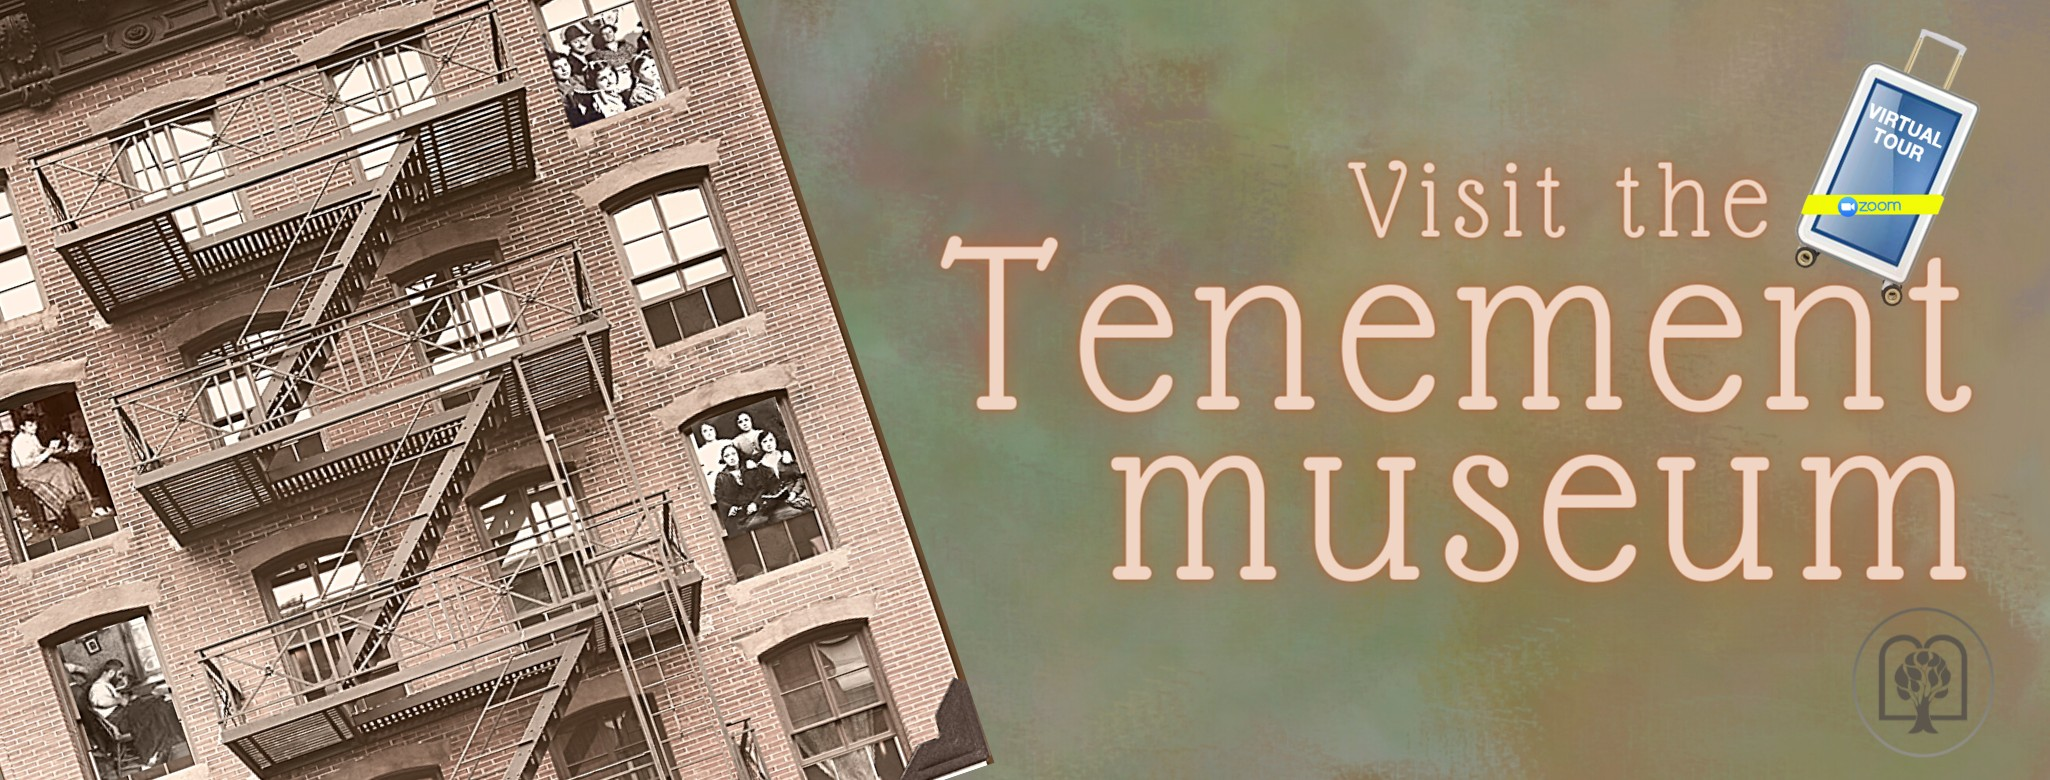 "<a href=""https://www.templebethel.com/event/tenament-museum-tour.html""